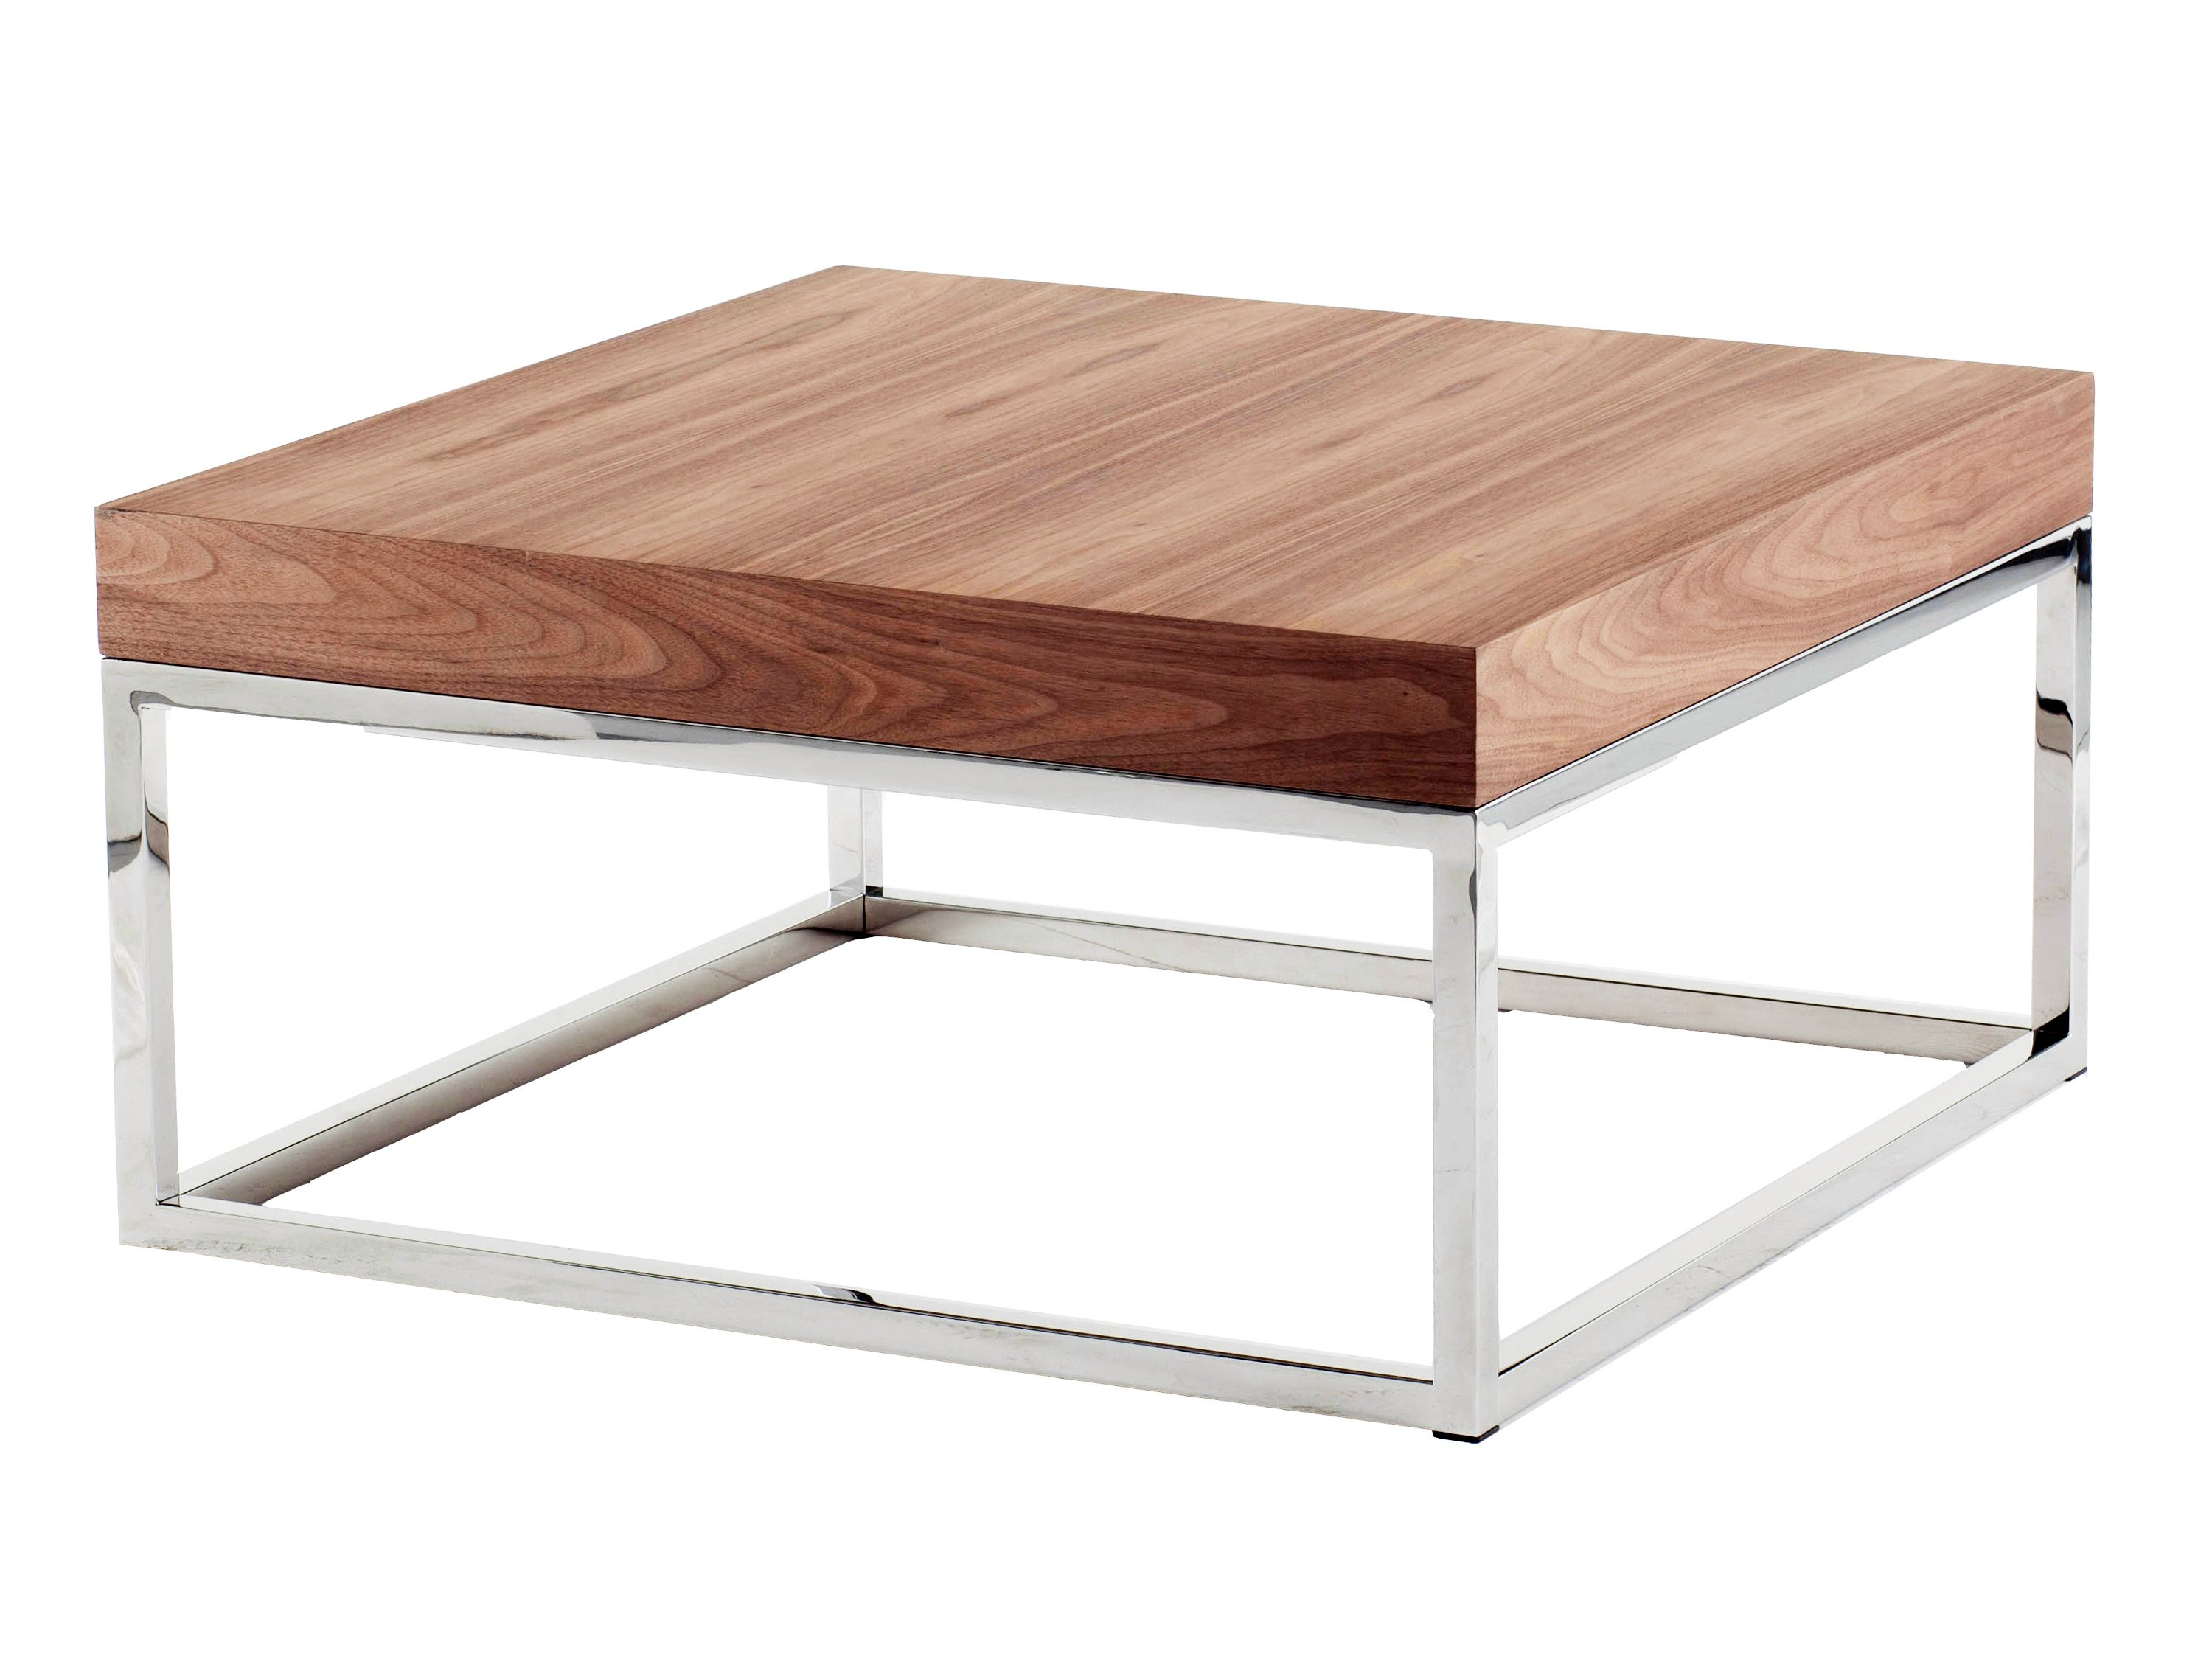 Azon square coffee table by azea design victor caetano for Low coffee table wood